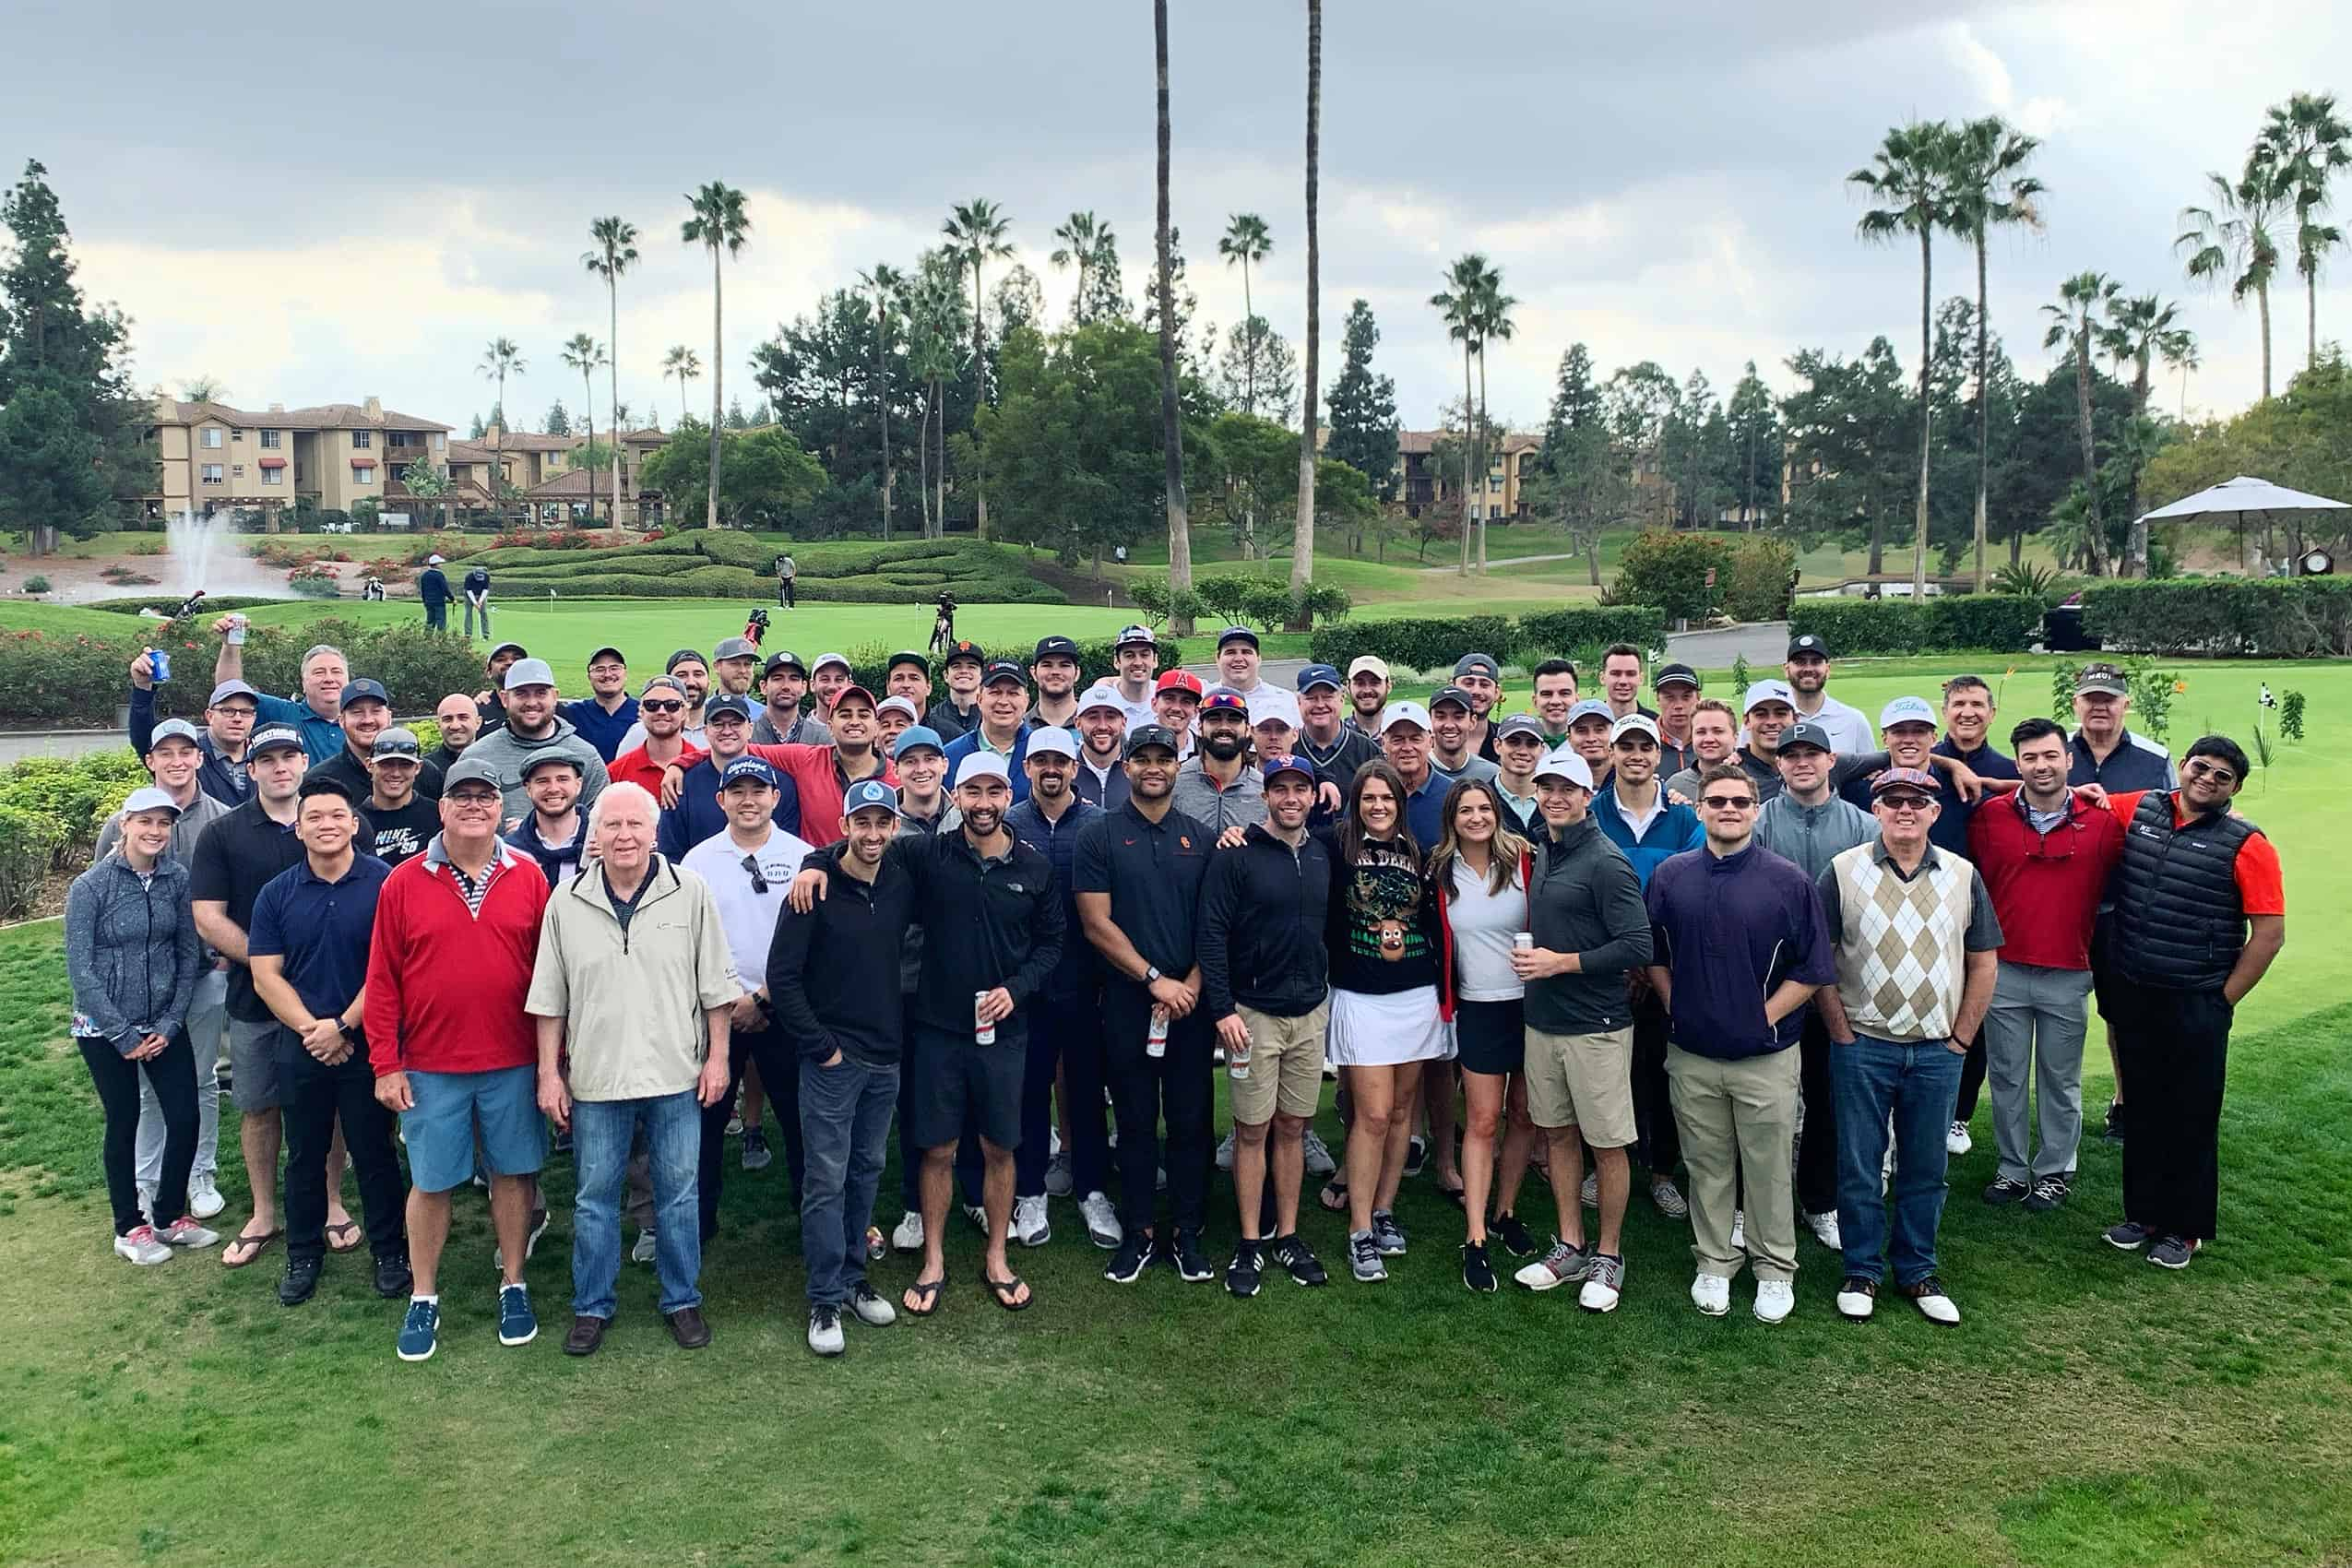 Fifth Annual Jim & Jerry Smith Memorial Golf Tournament